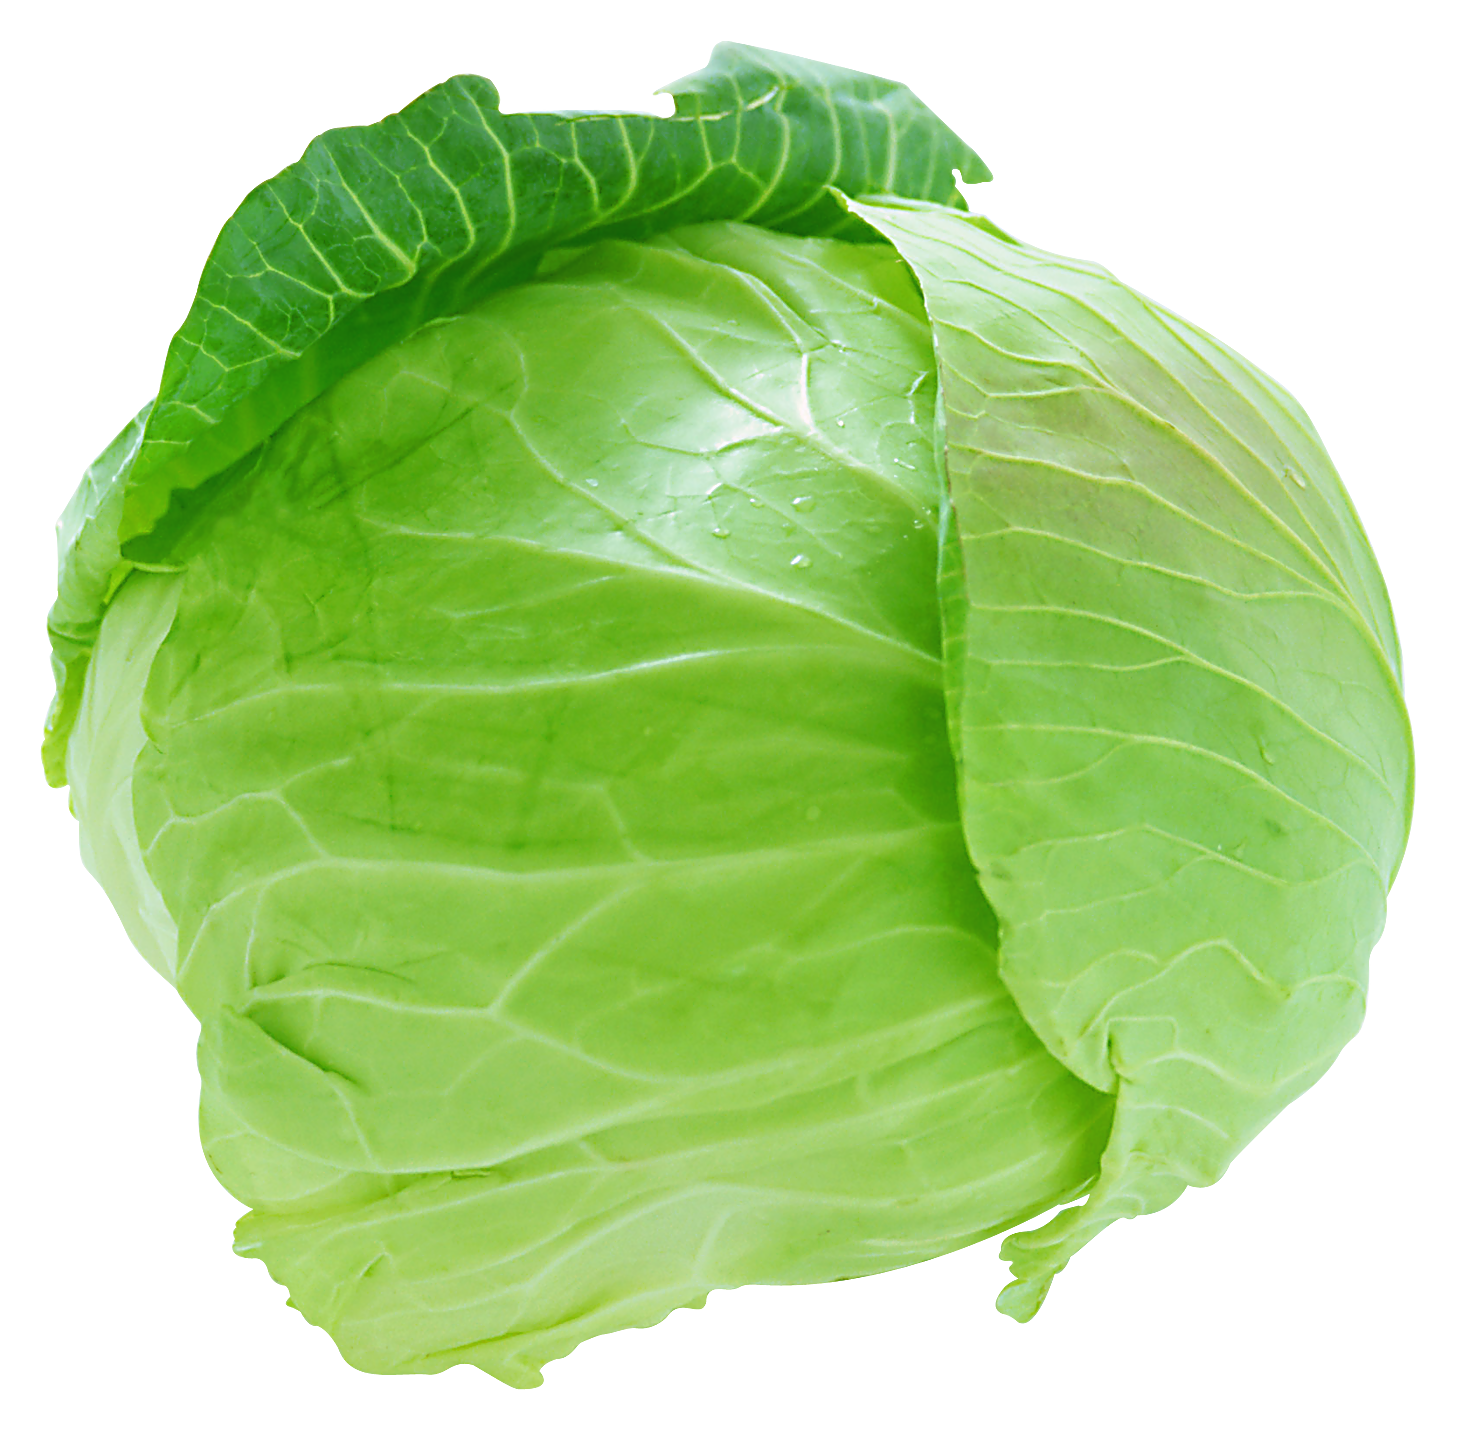 Vegetable PNG - 20360